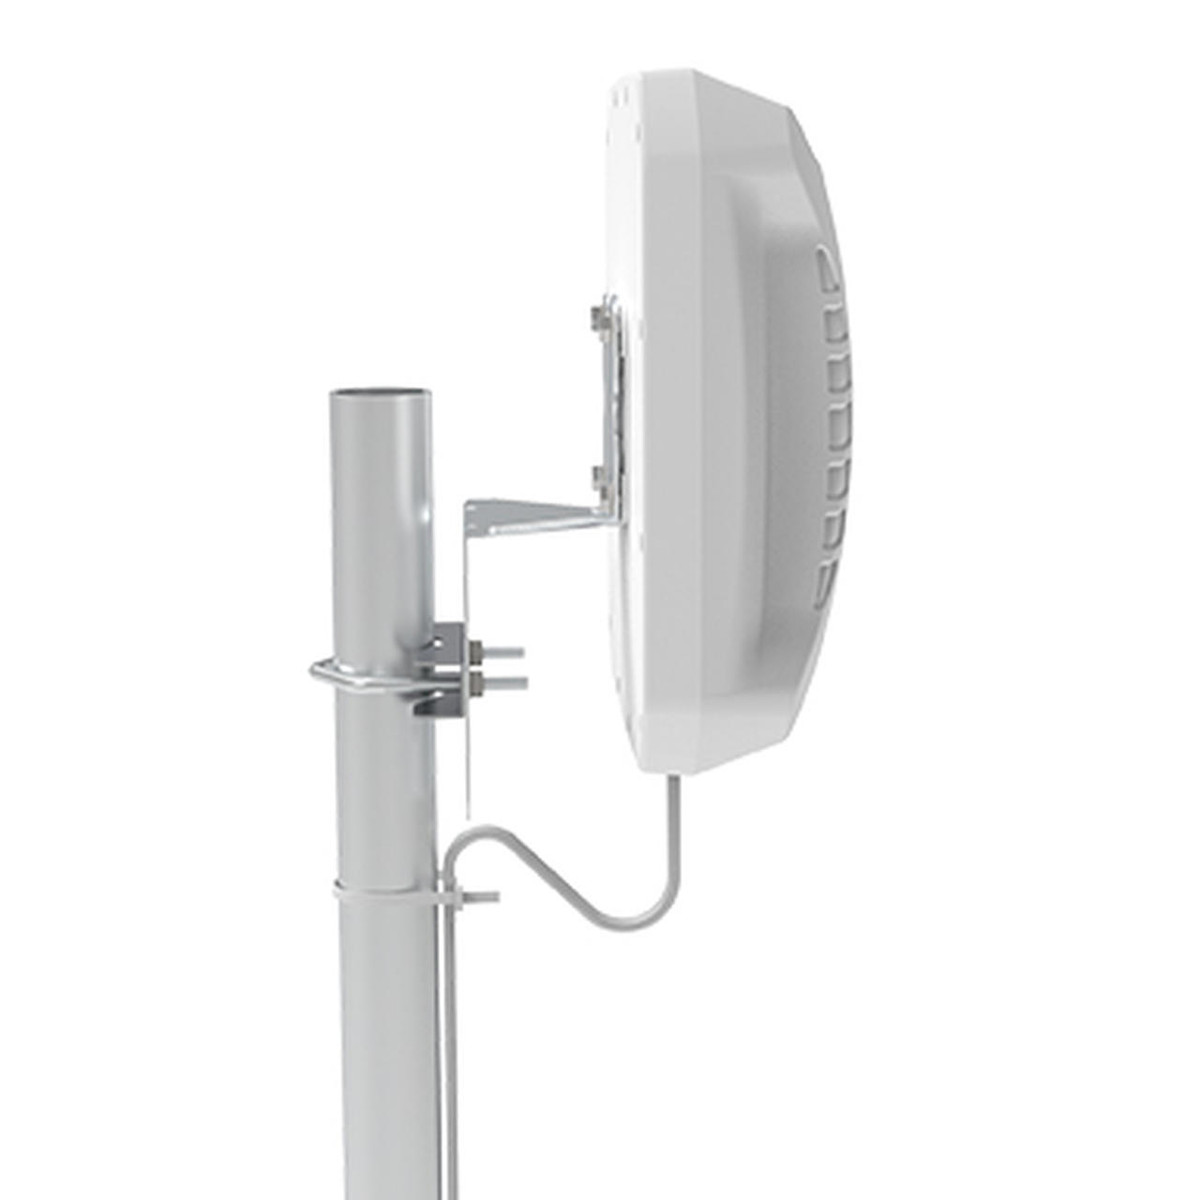 The Crossbow 5G Antenna or Bolton Technical